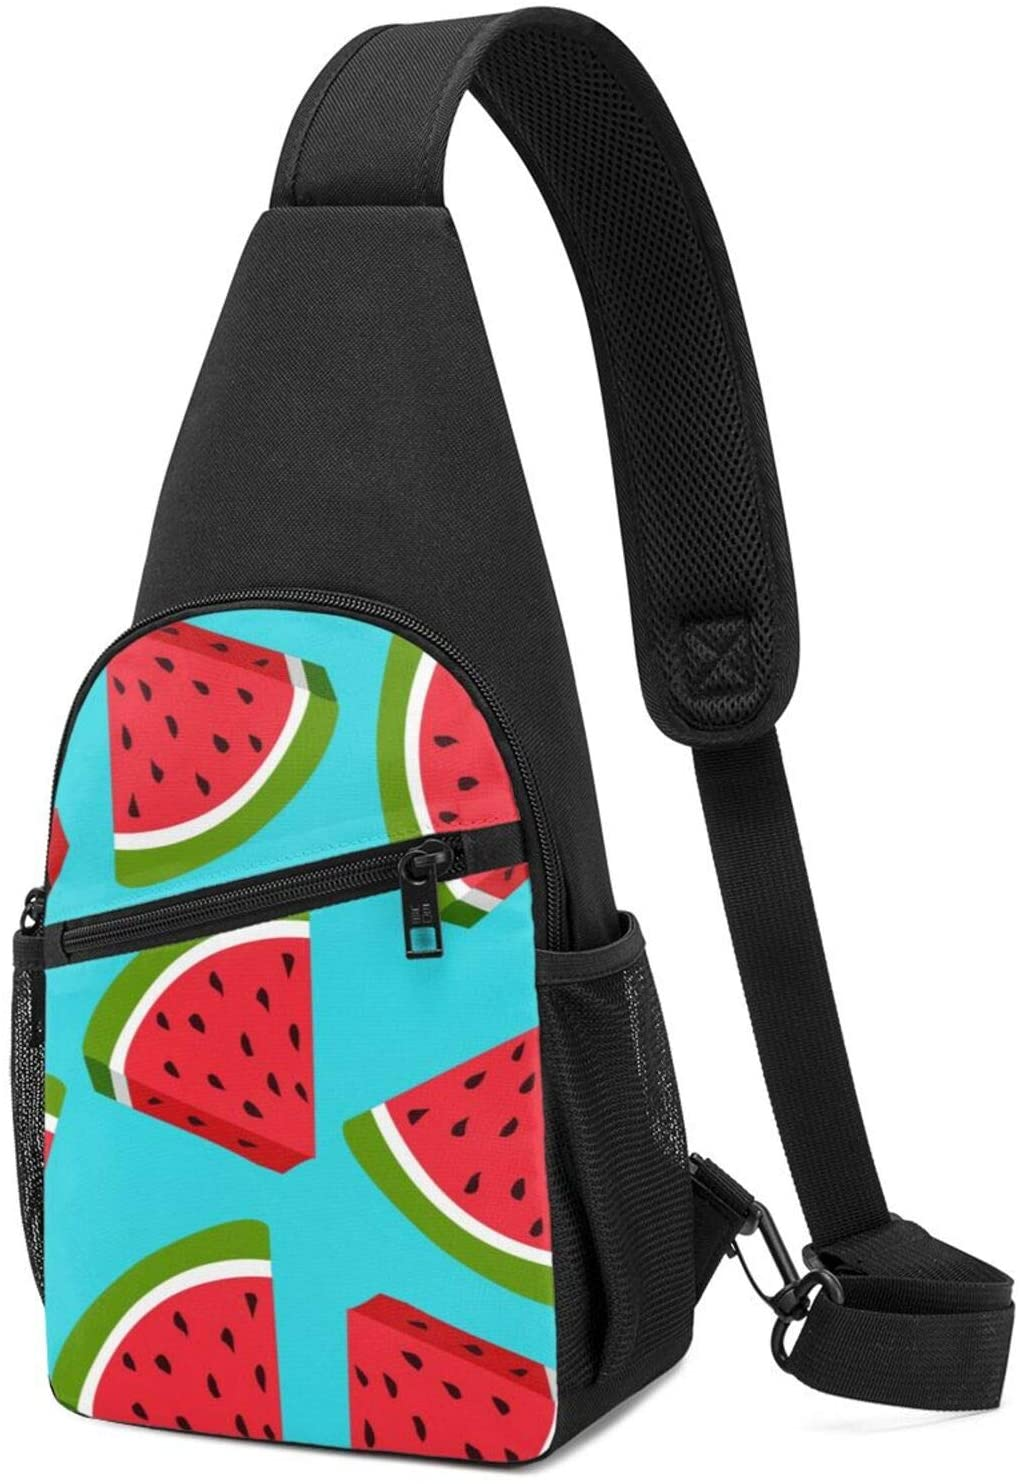 NiYoung Student Sling Bag Premium Fresh Watermelon Crossbody Bags Casual Chest Crossbody Anti-Theft Sling Bag Chest for Cycling, Running, Bicycle